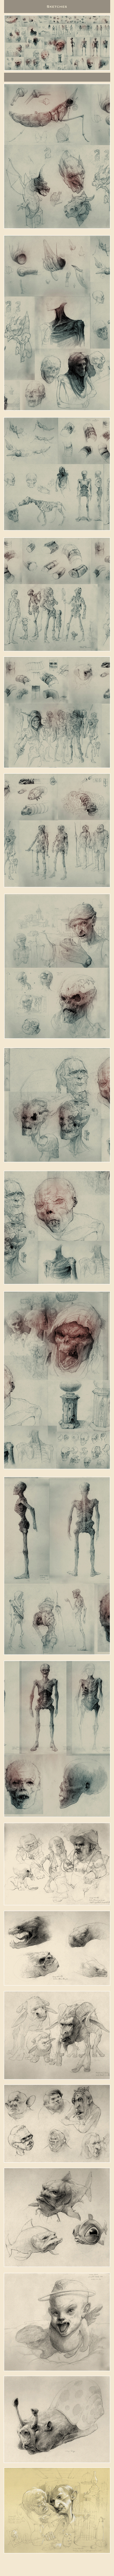 game sketches by MAJOS Illustrations